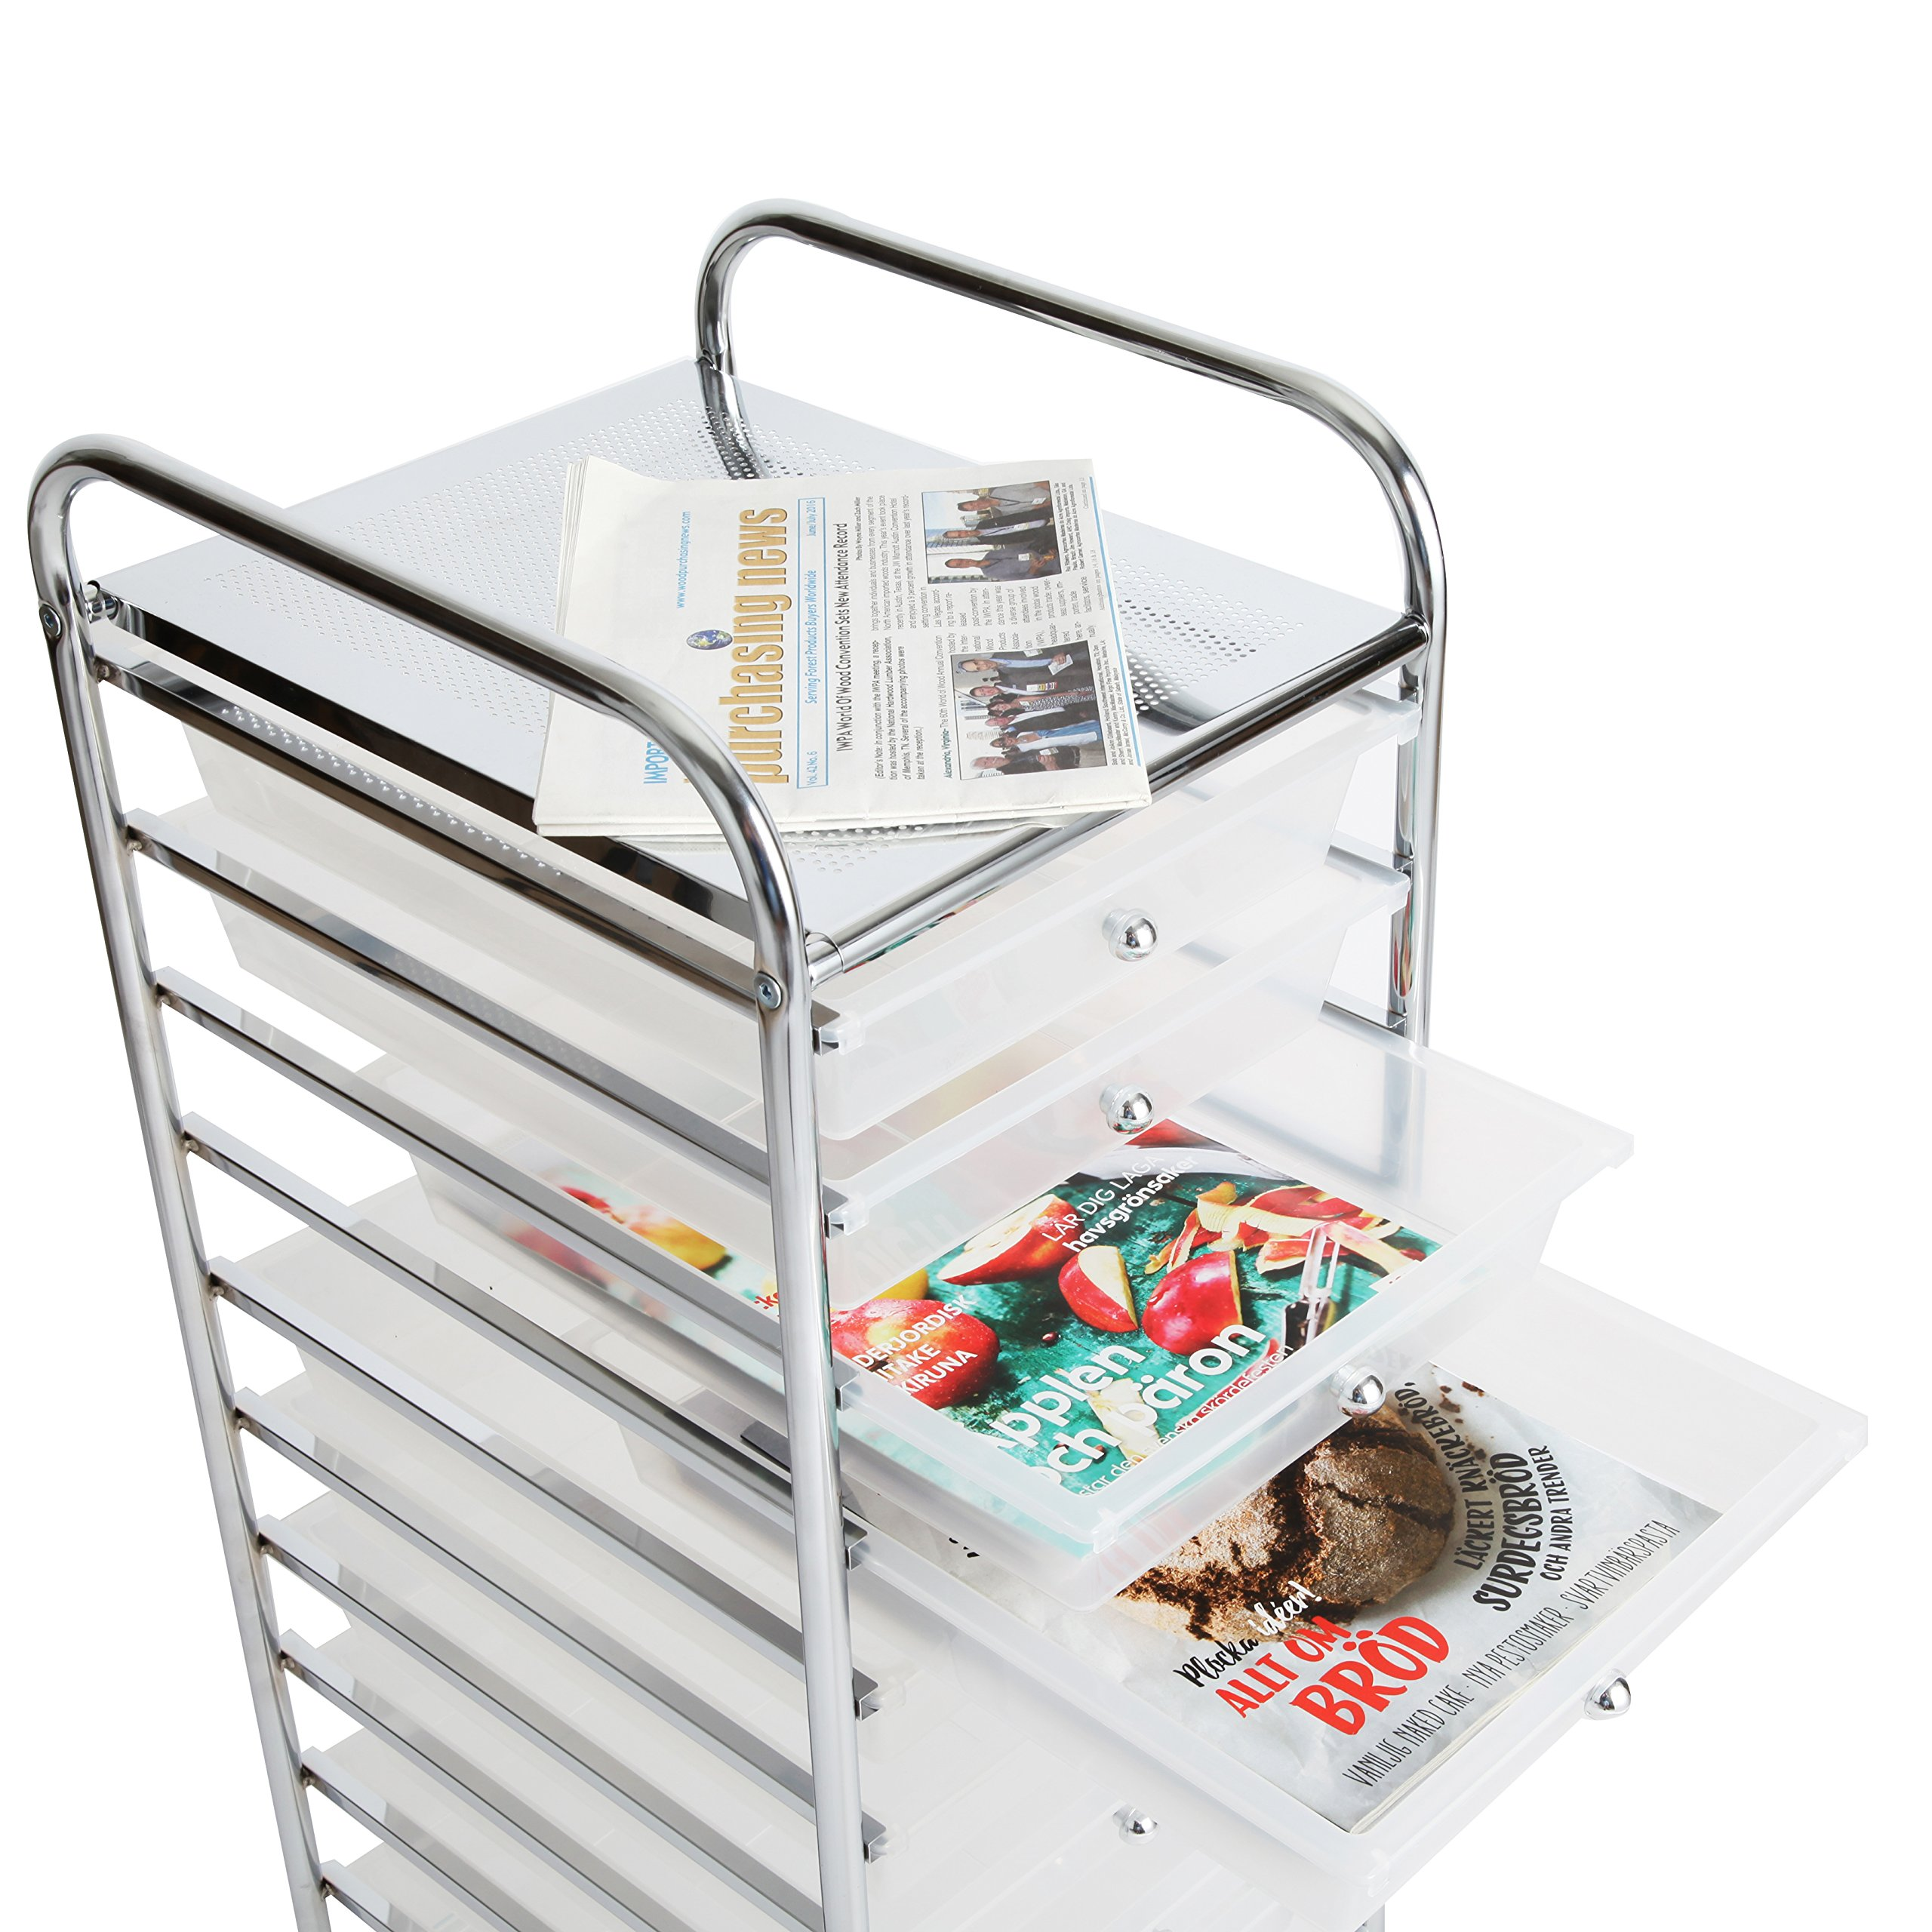 Finnhomy 10 Drawer Rolling Cart, Storage Rolling Carts with Semi-Transparent White Drawers, Organizer Cart for School, Office, Home, Beauty Salon,Utility Cart with Wheels by Finnhomy (Image #6)